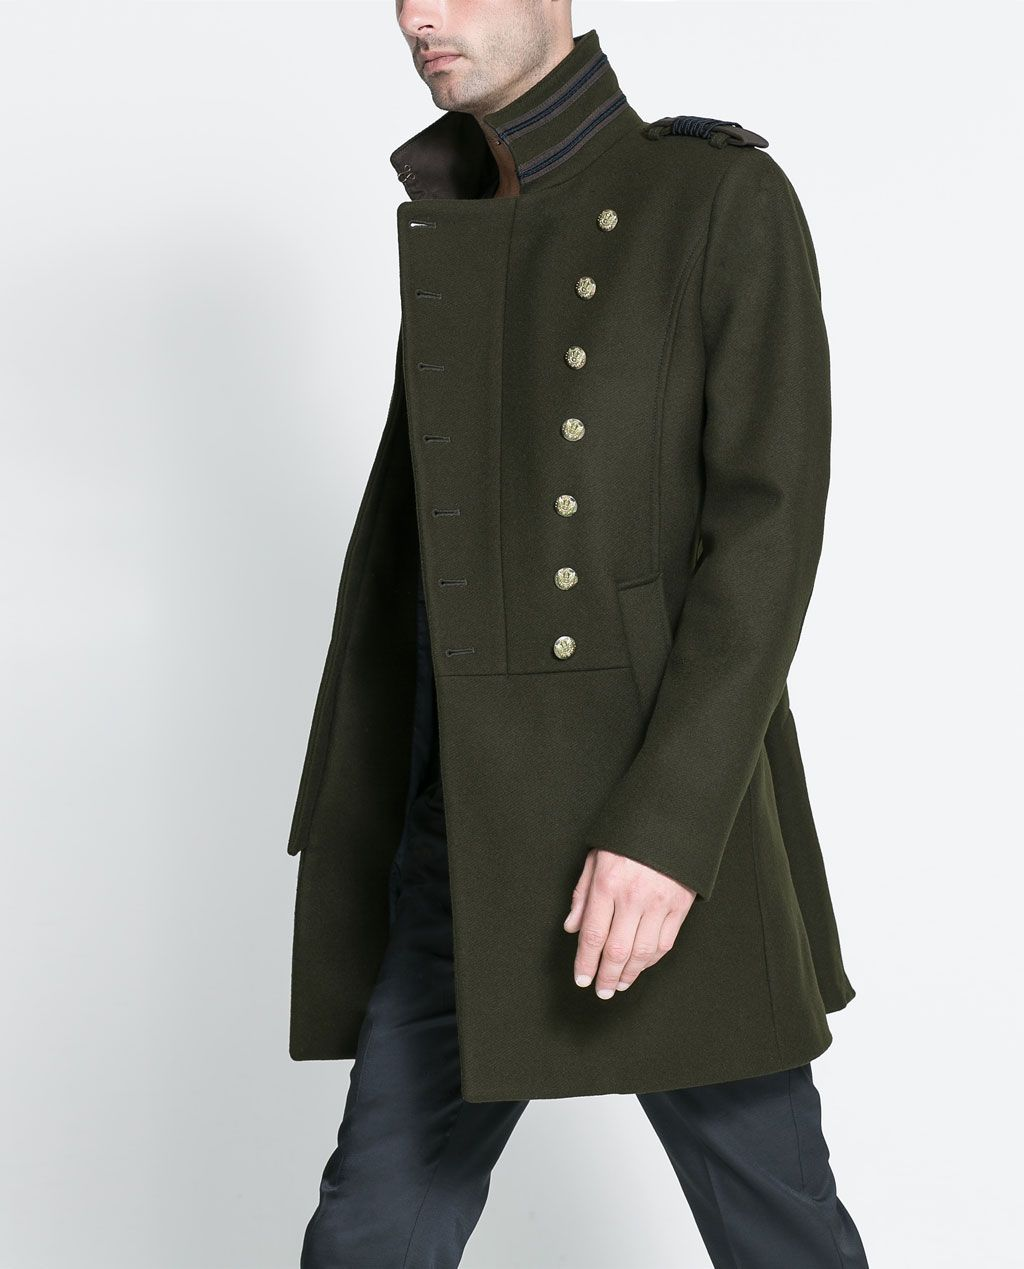 ZARA - NEW THIS WEEK - MILITARY STYLE COAT | Ropa de